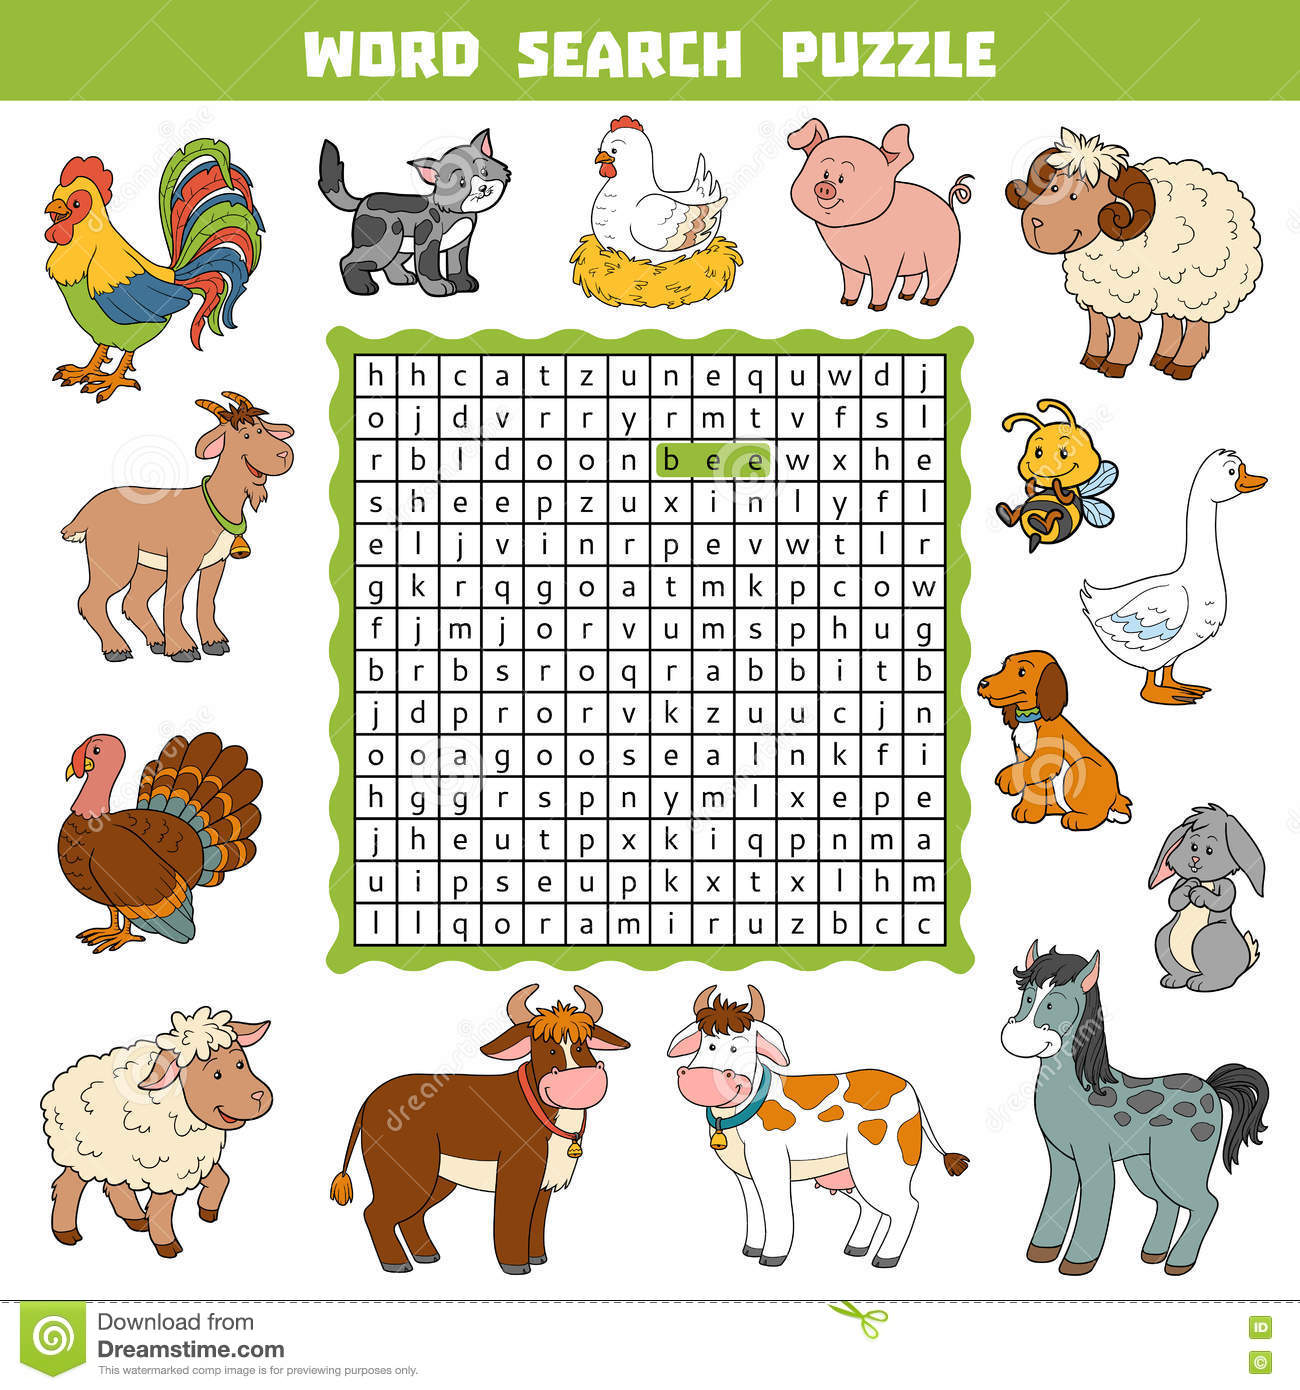 Game with shapes of different colors crossword - Vector Color Crossword About Farm Animals Word Search Puzzle Royalty Free Stock Photo